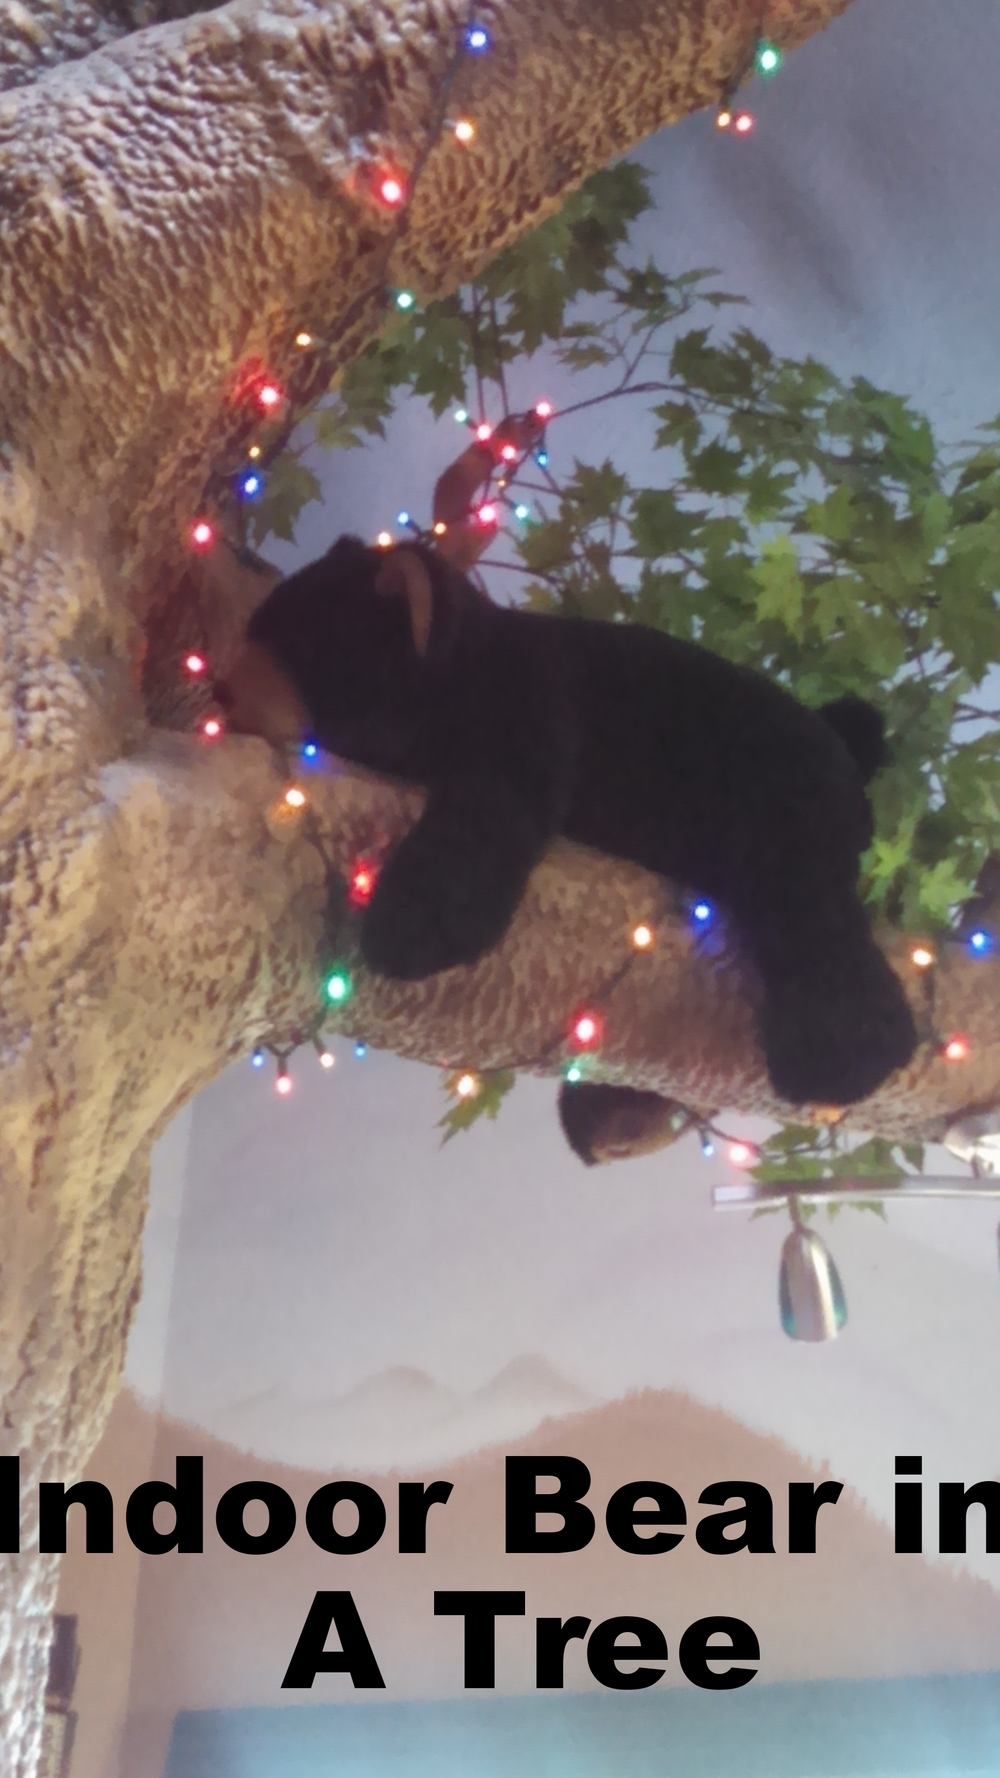 BEAR IN A TREE.jpg